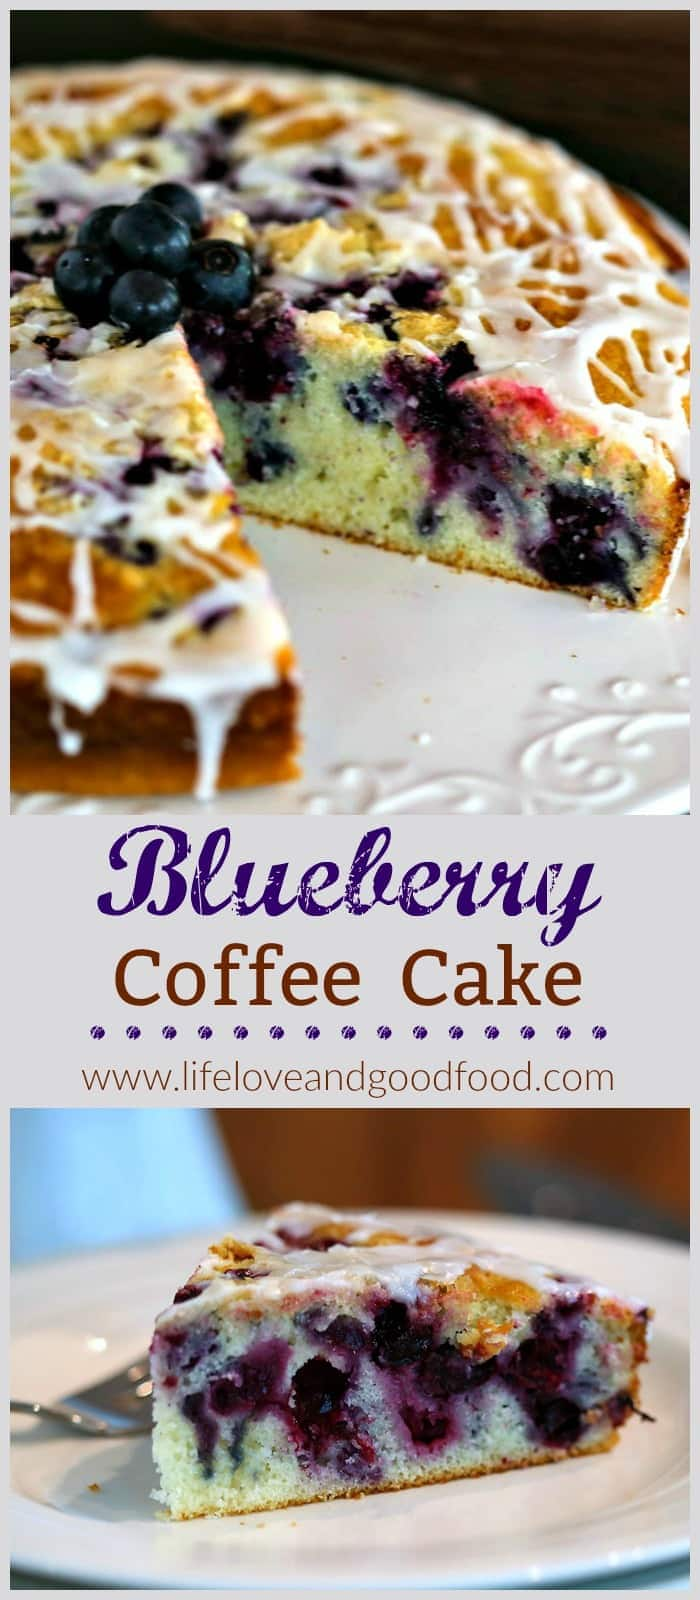 Bursting with fresh blueberries and a dash of lemon flavoring, this lightened-up coffee cake makes a beautiful and delicious brunch dessert.  #coffeecake #blueberry